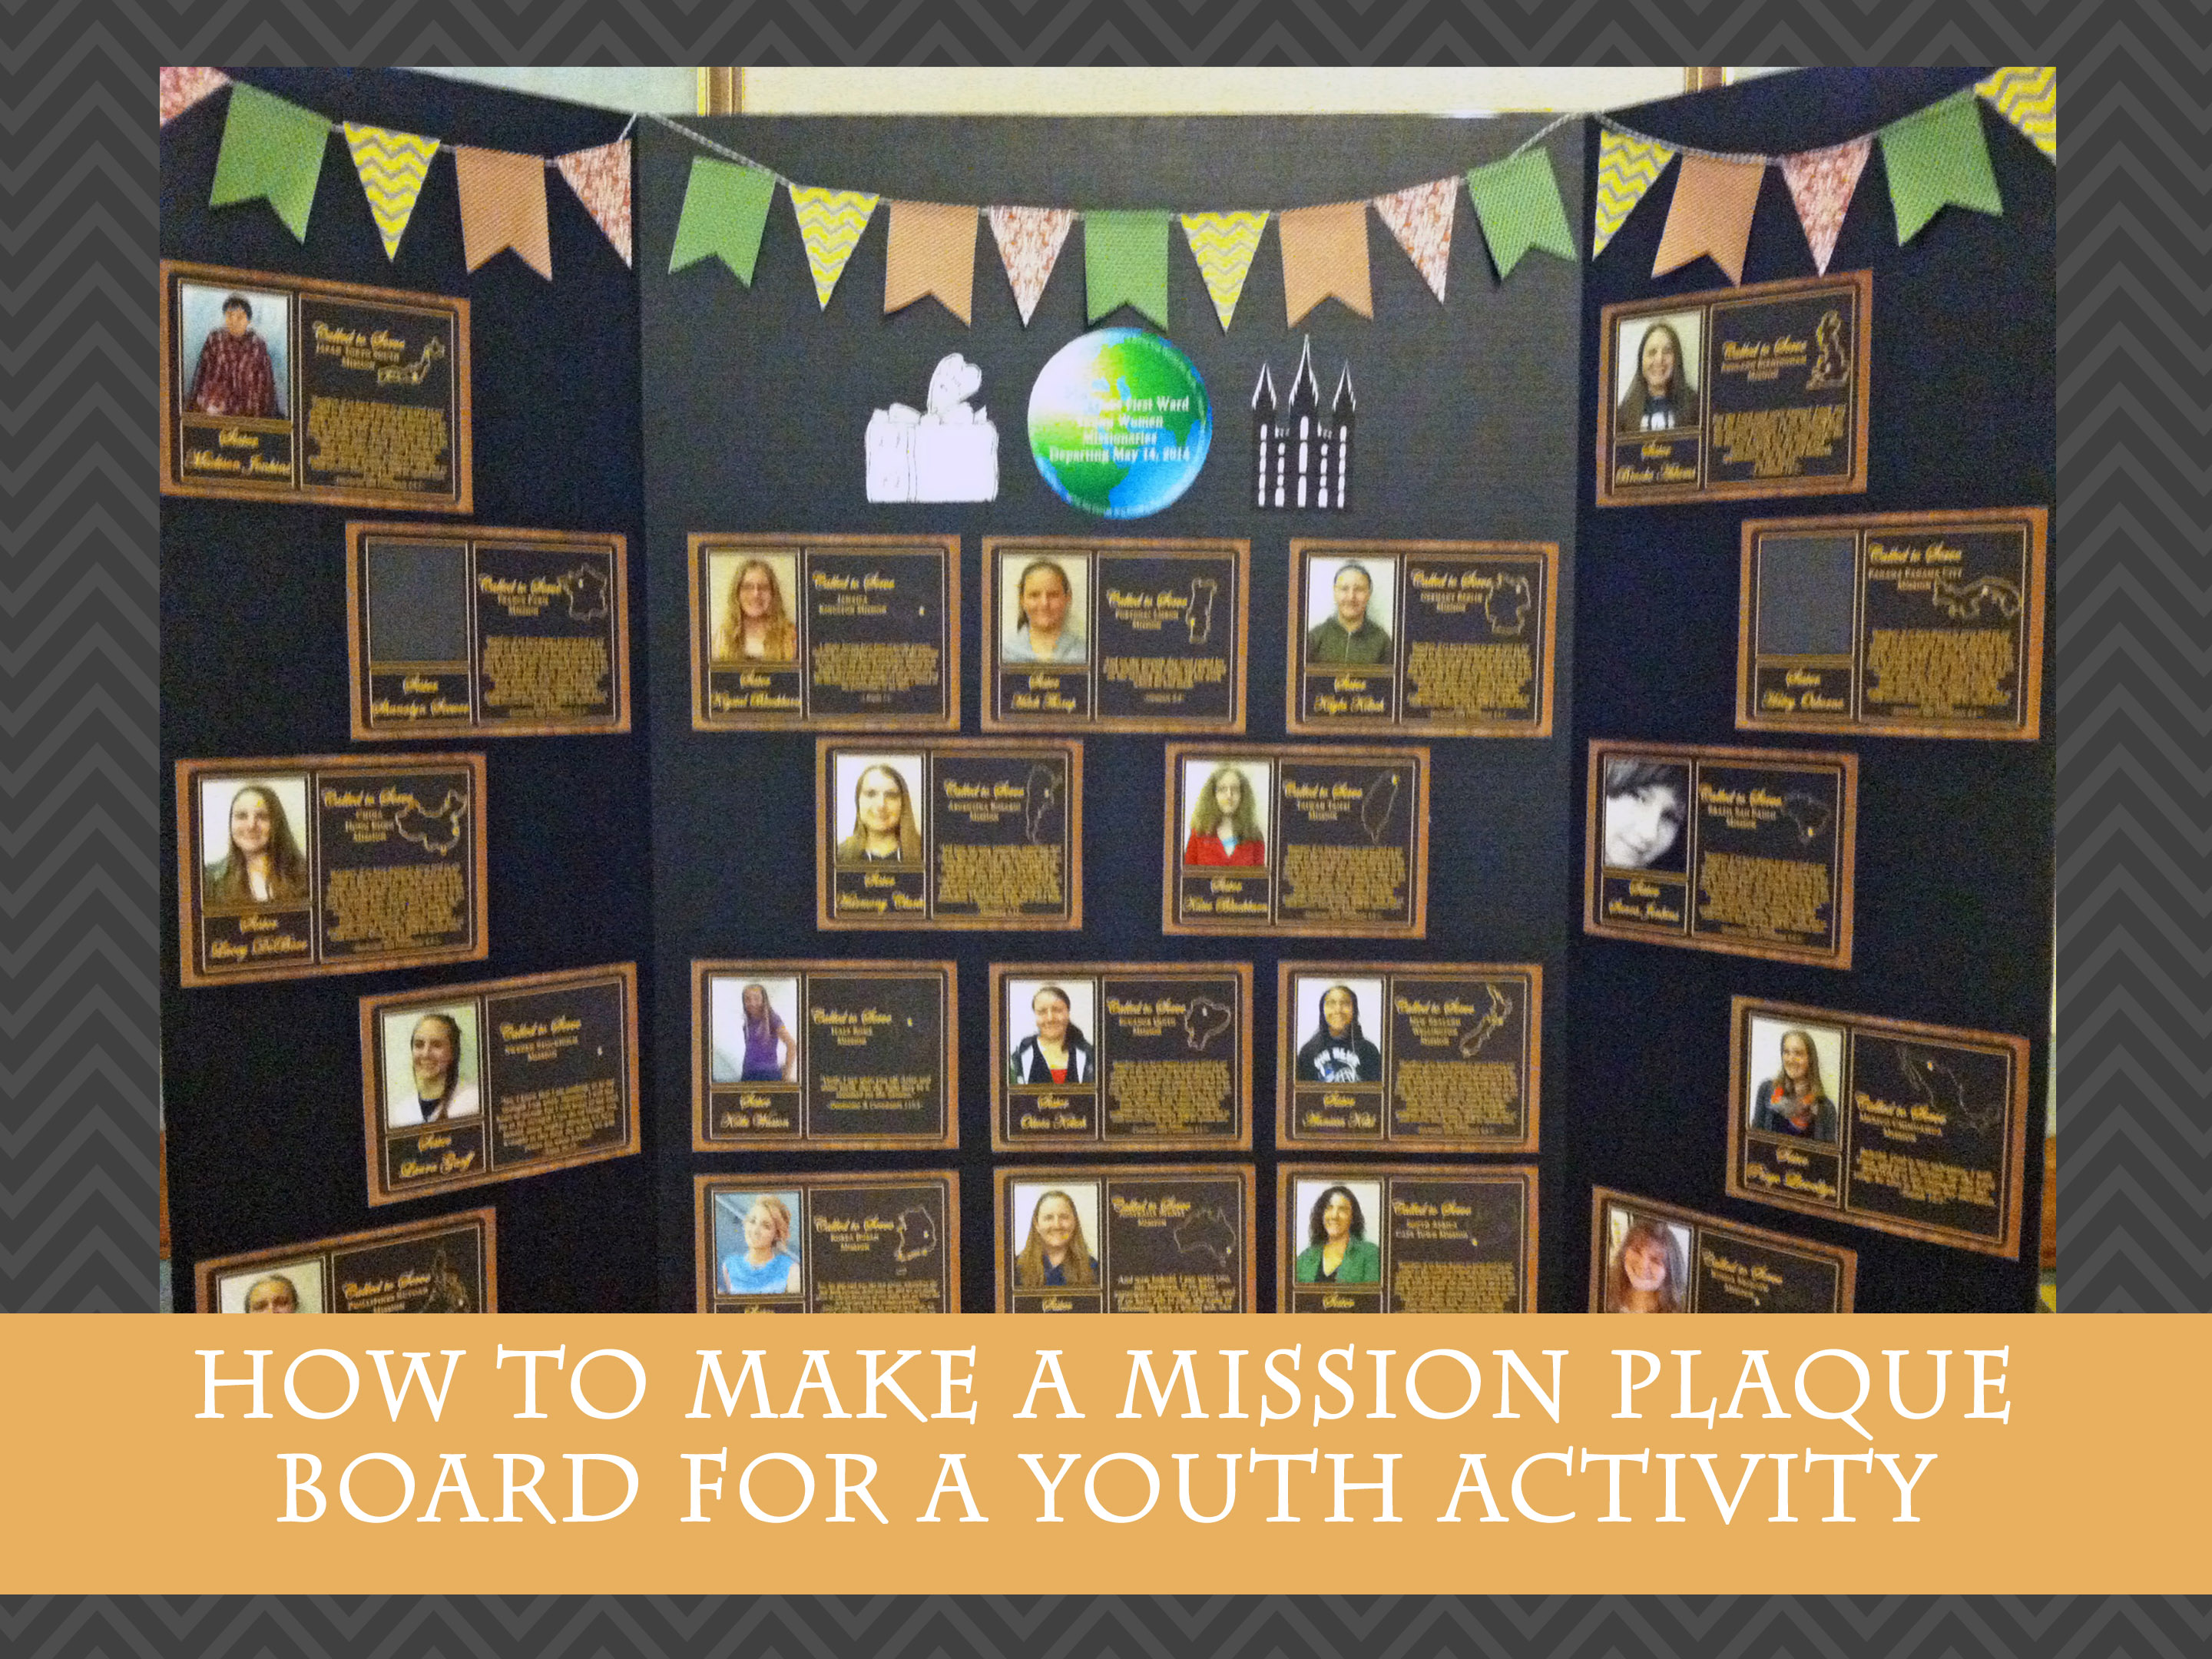 Making A Mission Plaque Board For Yw Activity